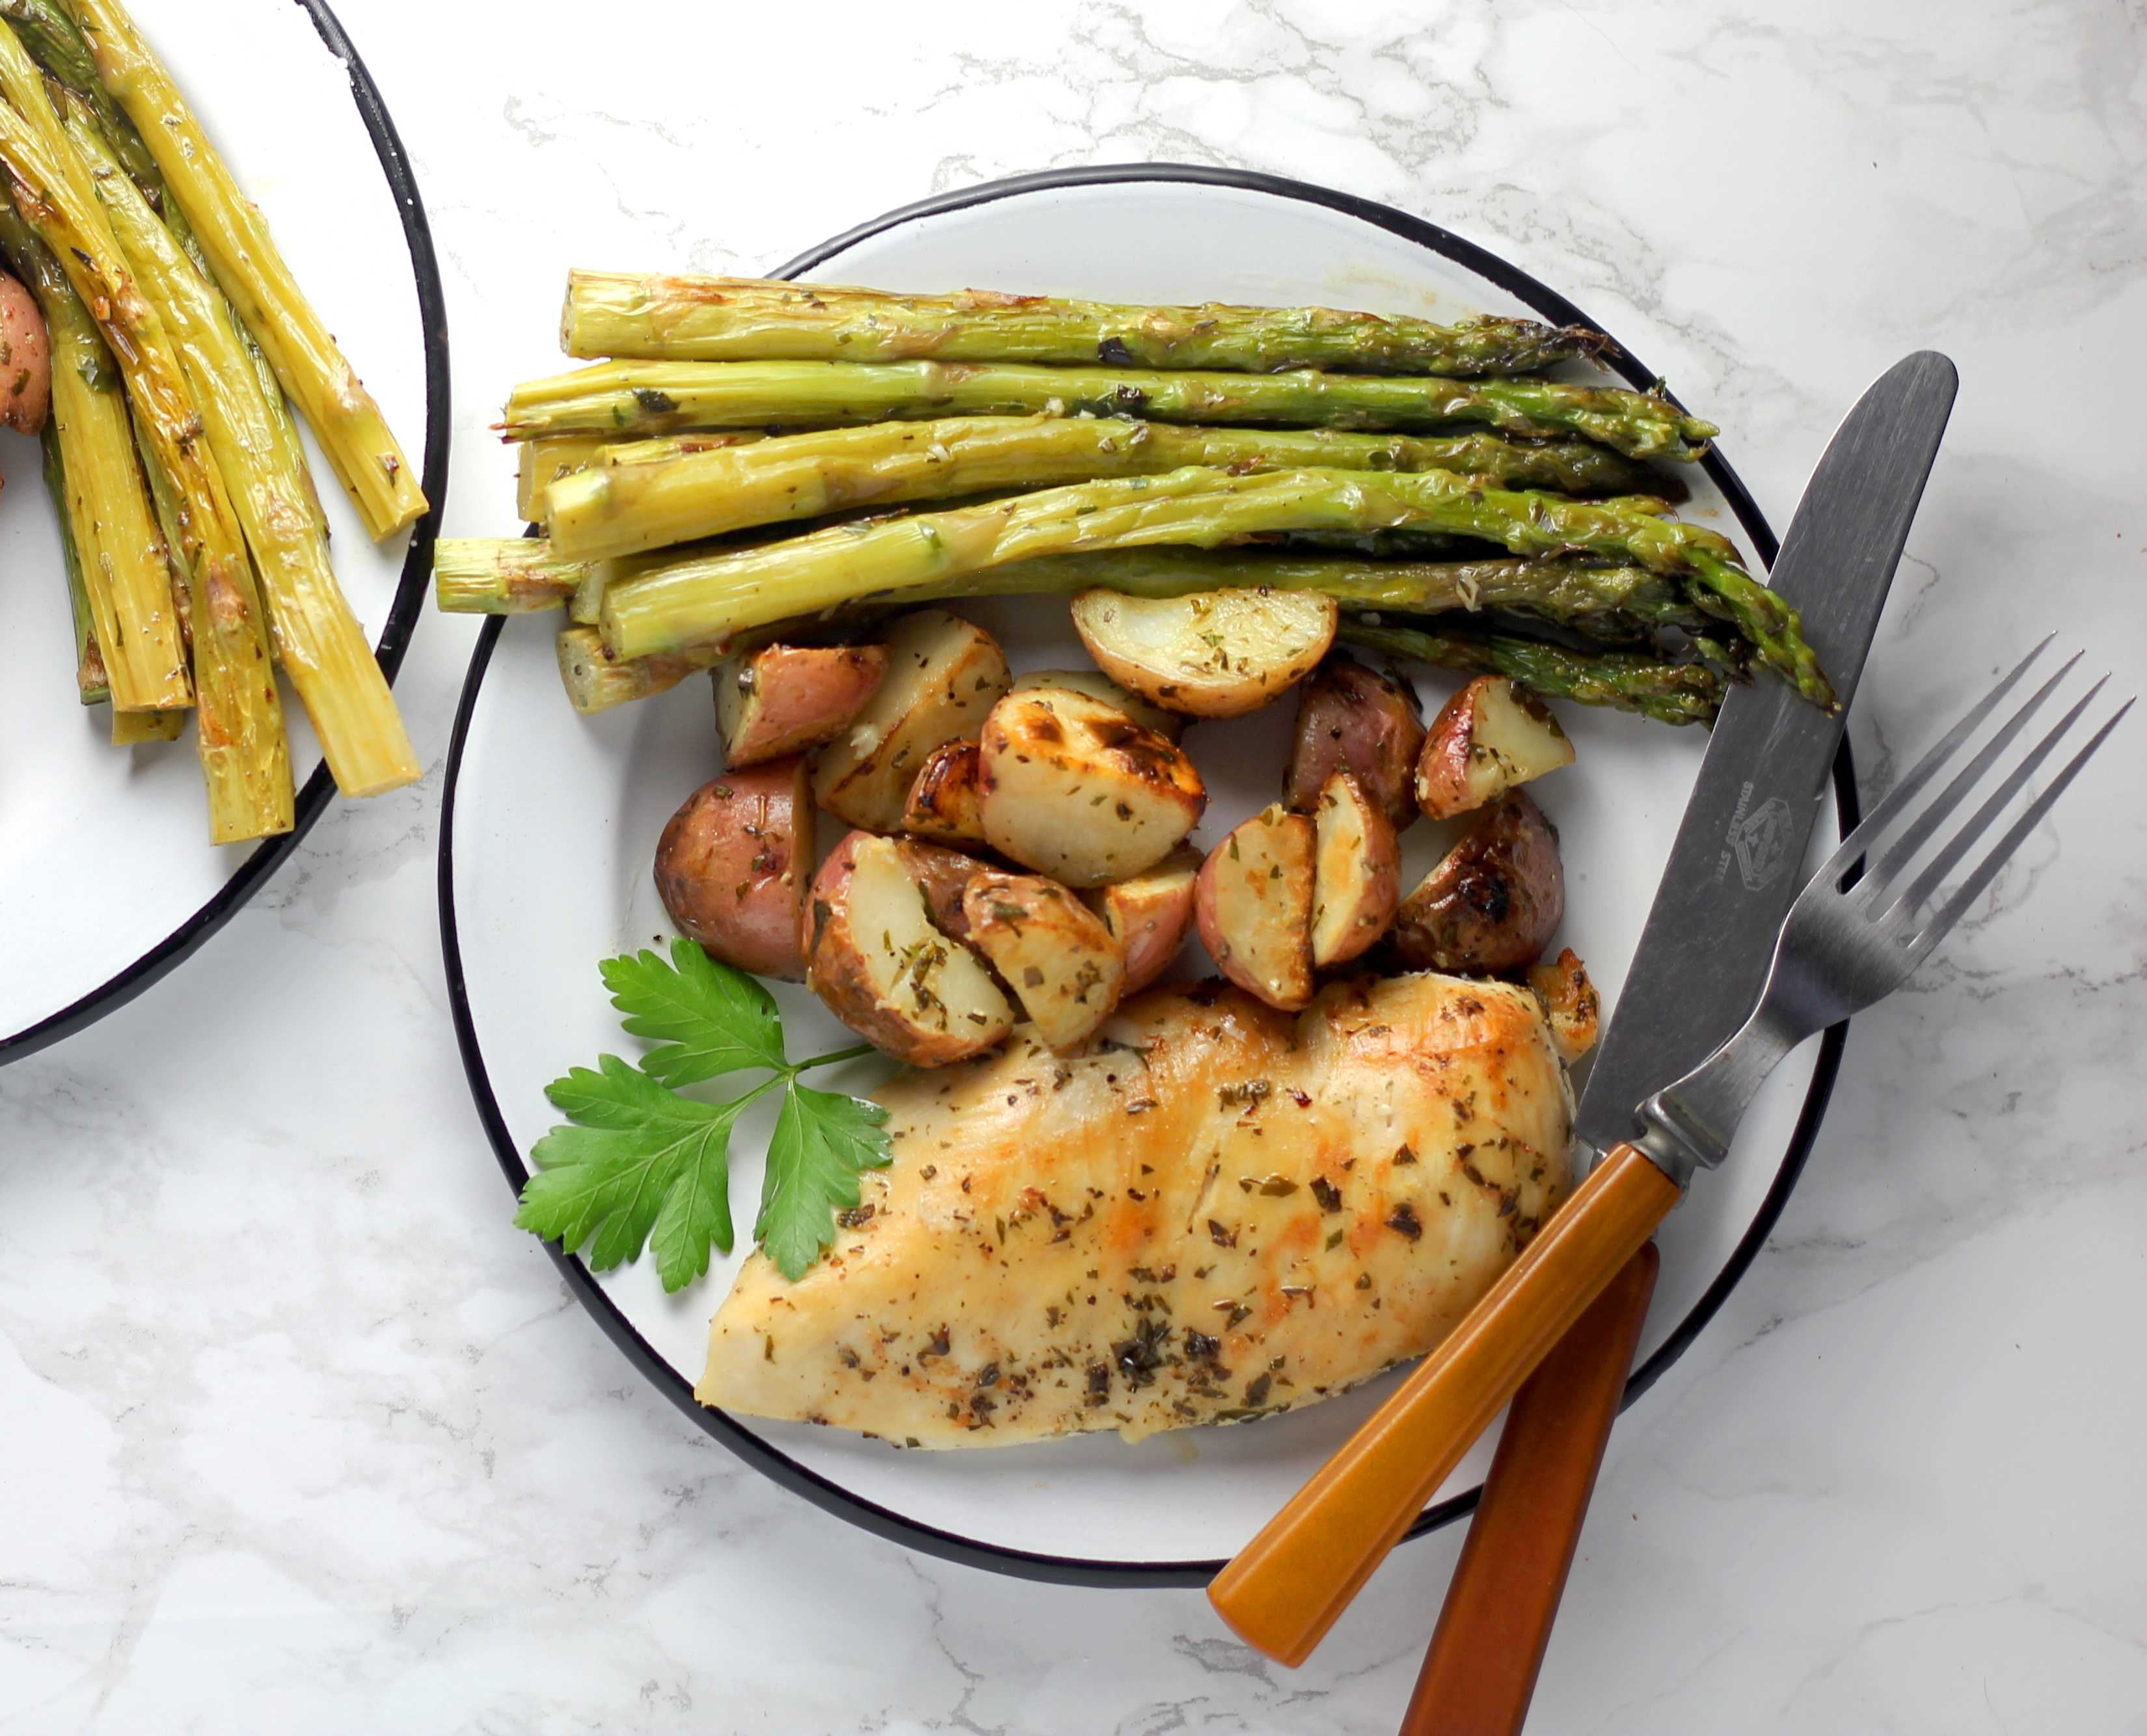 This quick and easy One-Pan Garlic Herb Butter Chicken with Potatoes and Asparagus makes a complete, satisfying dinner that's perfect for busy weeknights!